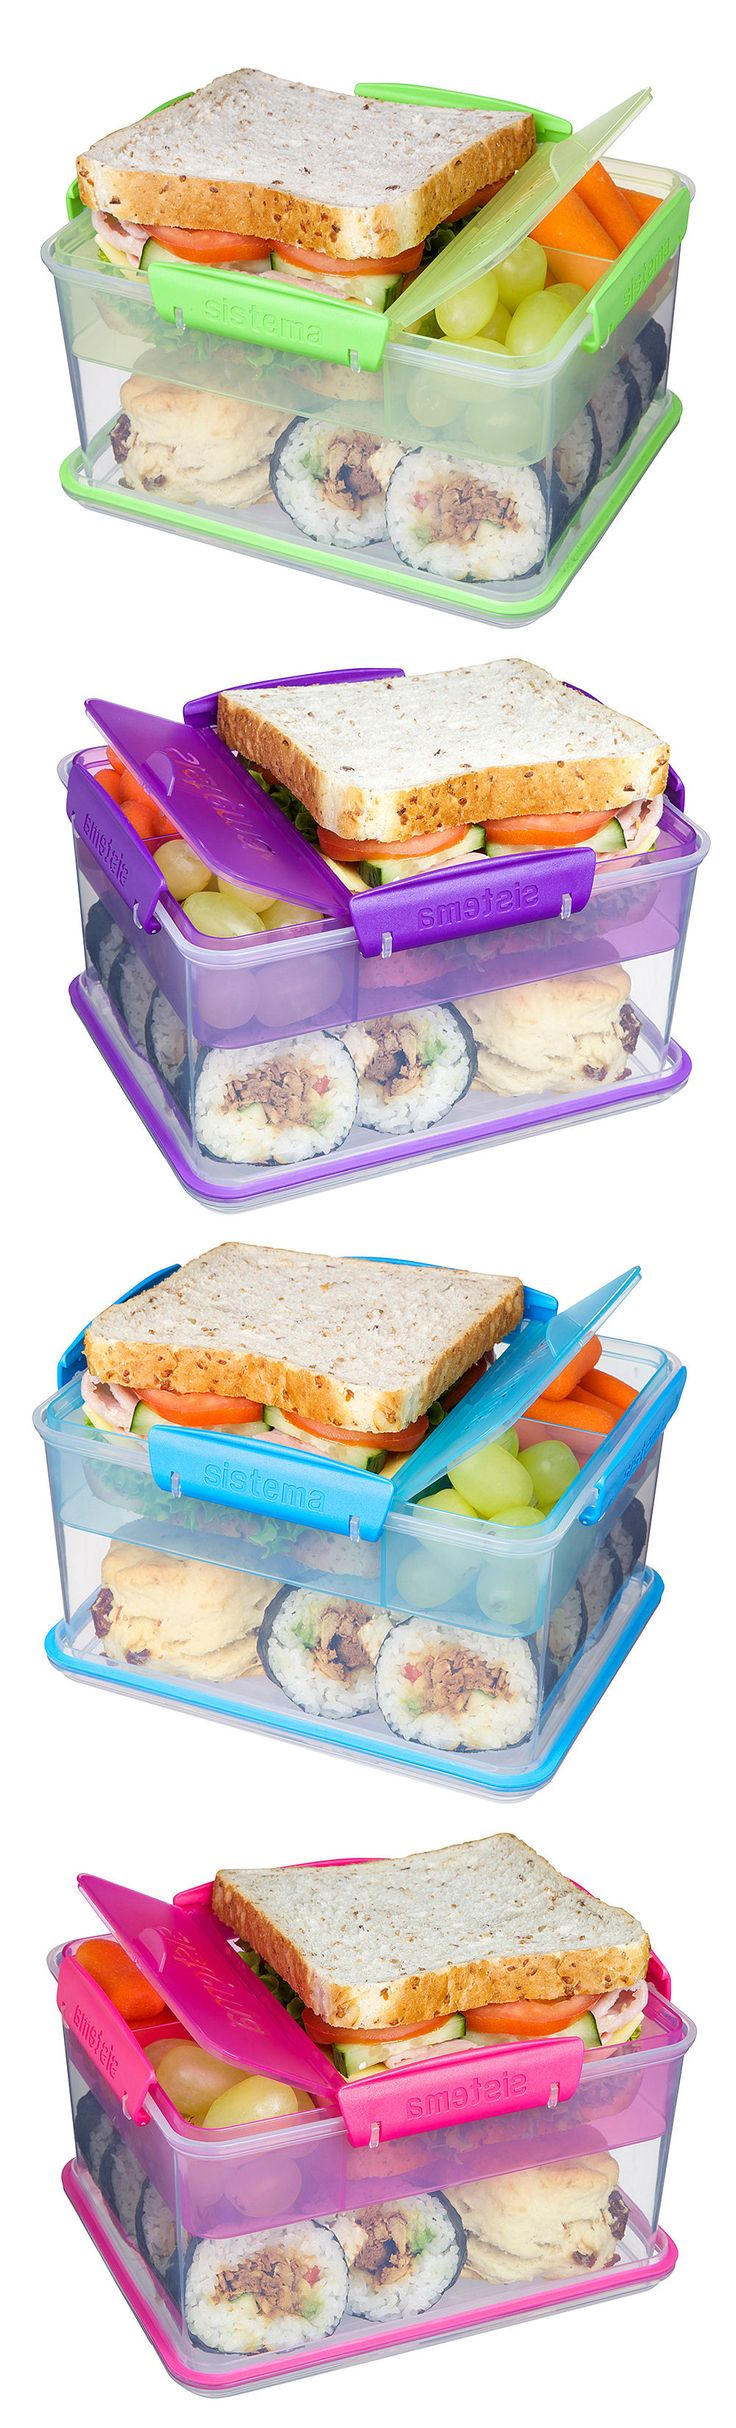 Lunch-to-Go Box ❤︎ Compact With Separate Compartments to keep food fresh & from getting soggy